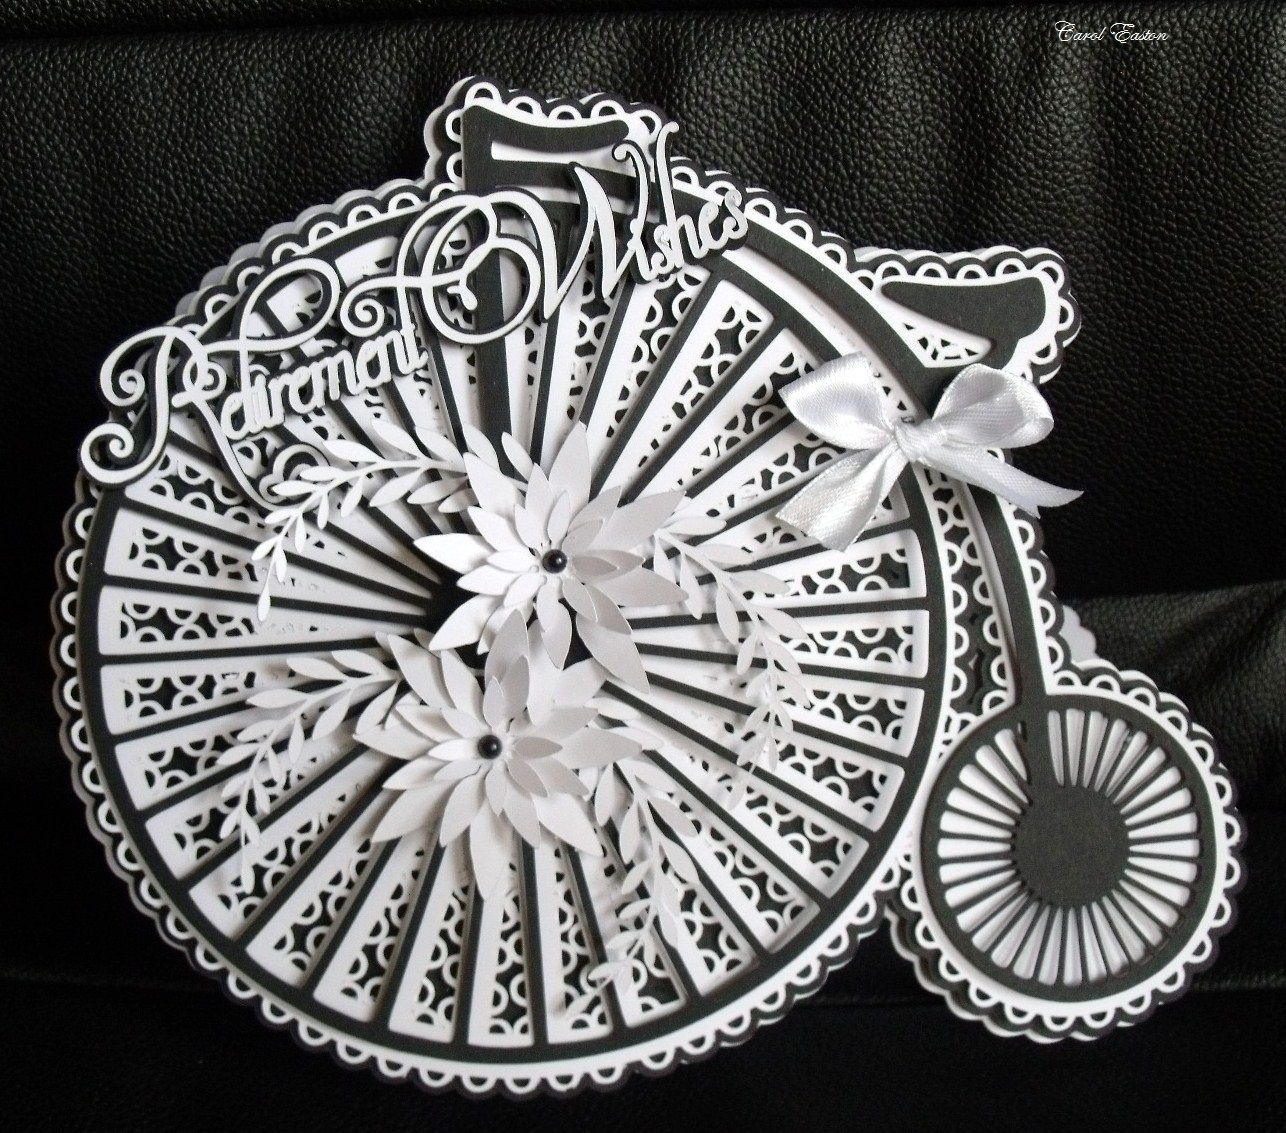 Designed and cut on Silhouette Cameo machine now available at Forevermemoriesforyou.co.uk